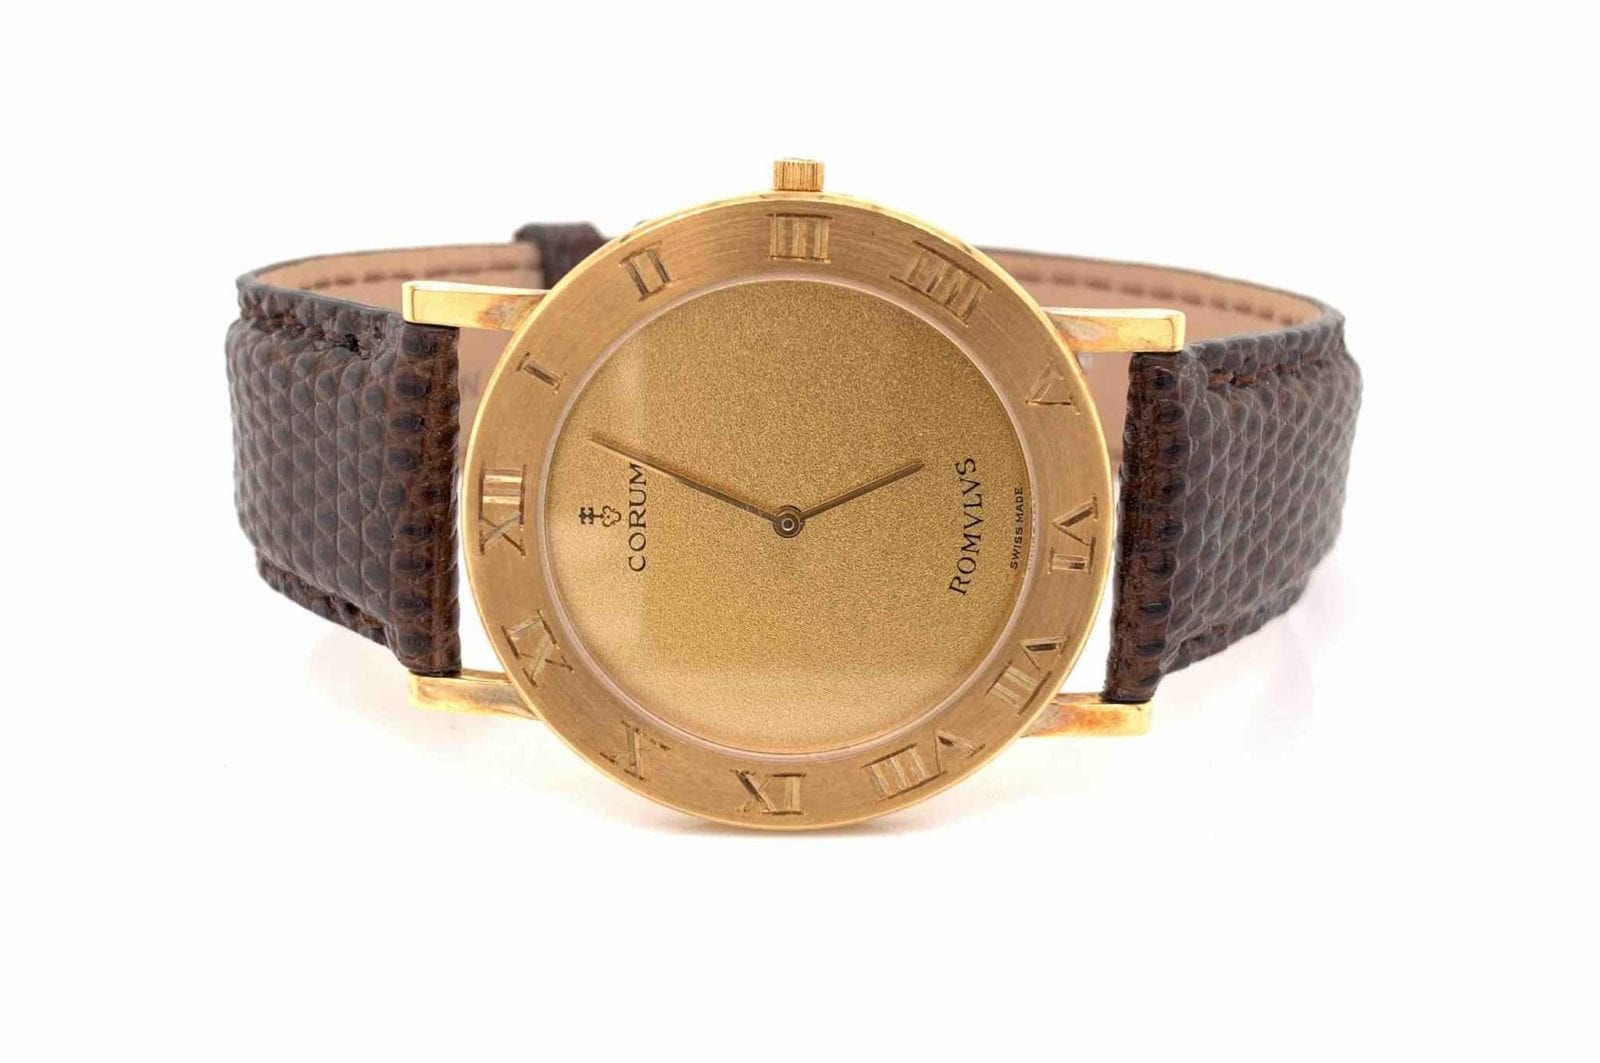 Montre Corum Romvlvs en or jaune 18k